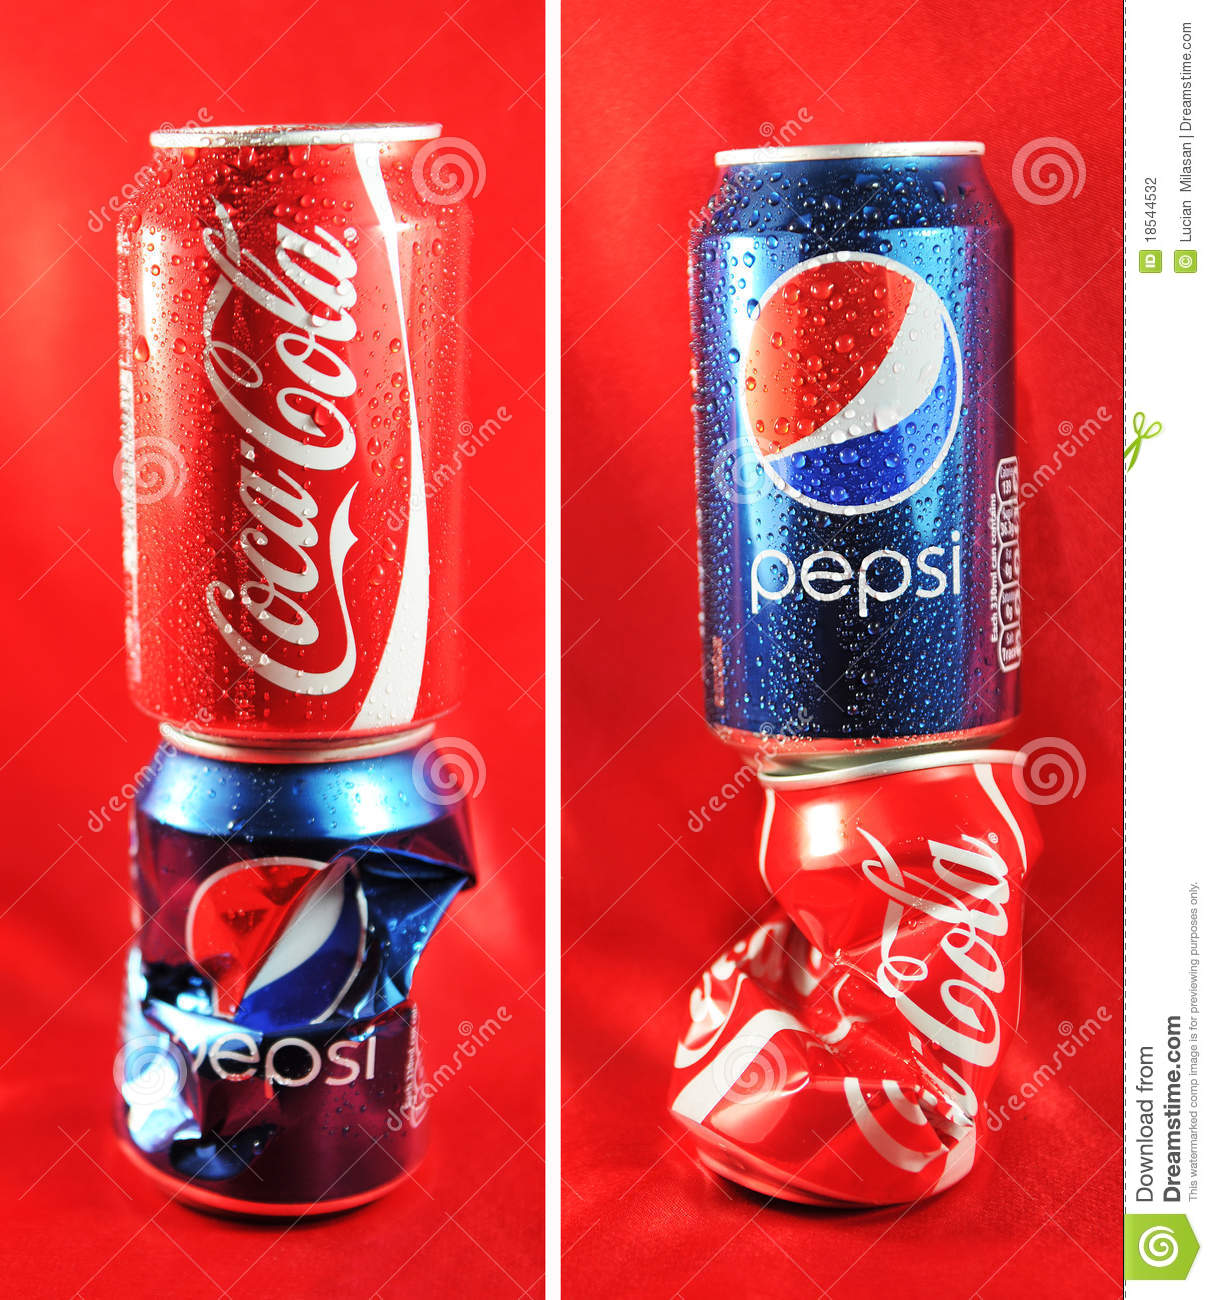 wahaha vs coca cola and pepsi The cola wars have been raging for over a century now, turning soda into a multi billion dollar a year industry but just who are the titans of this industry, how did they get to where they are, and which of them reigns supreme.